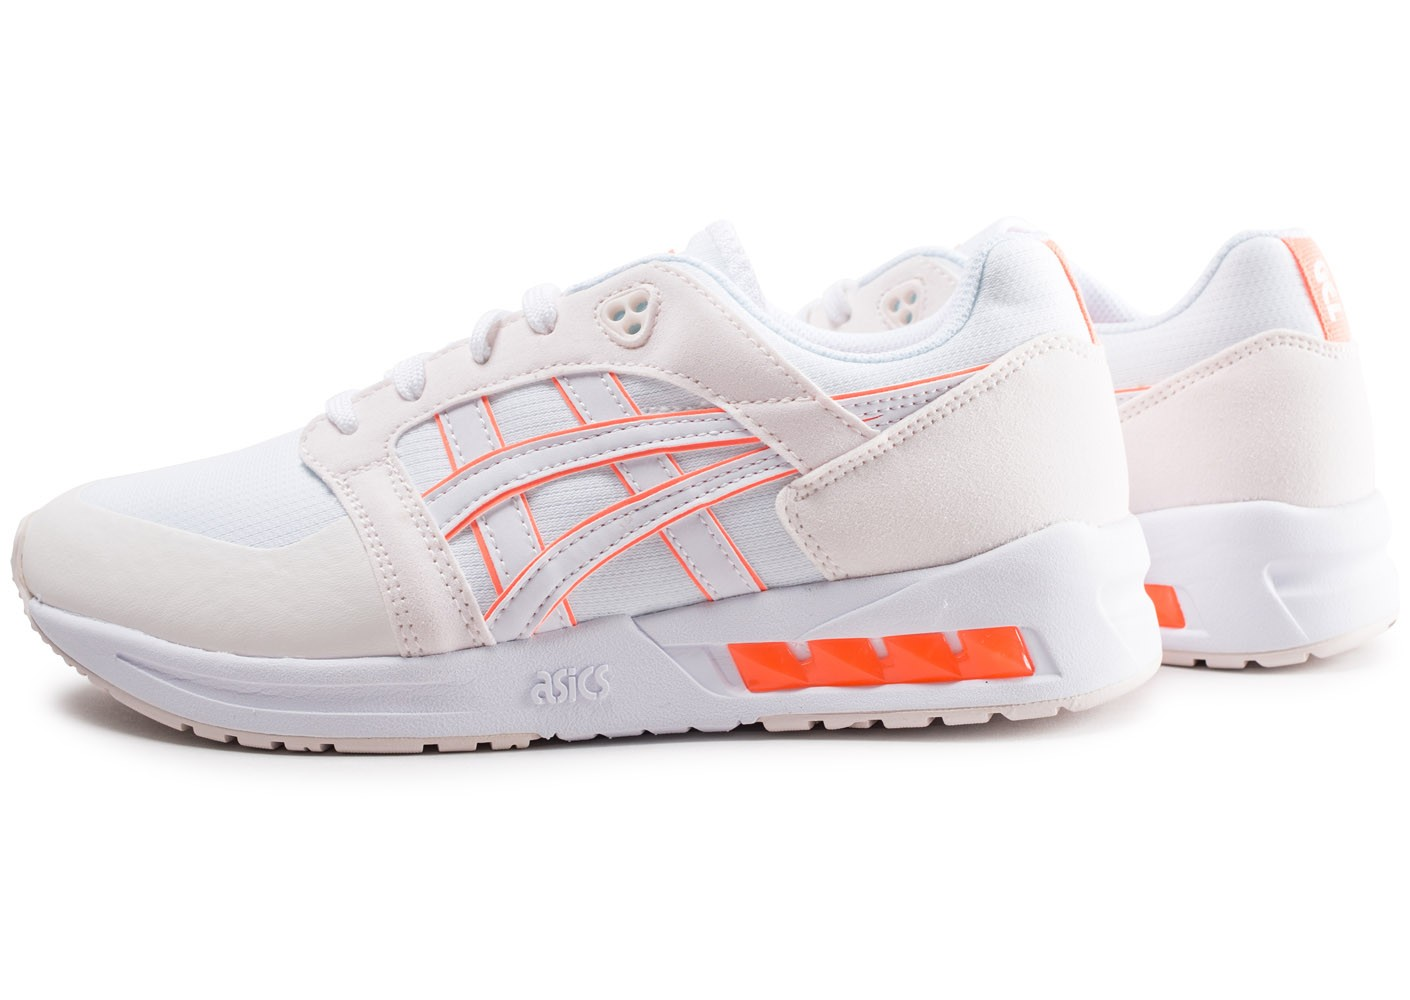 asics blanche noir orange